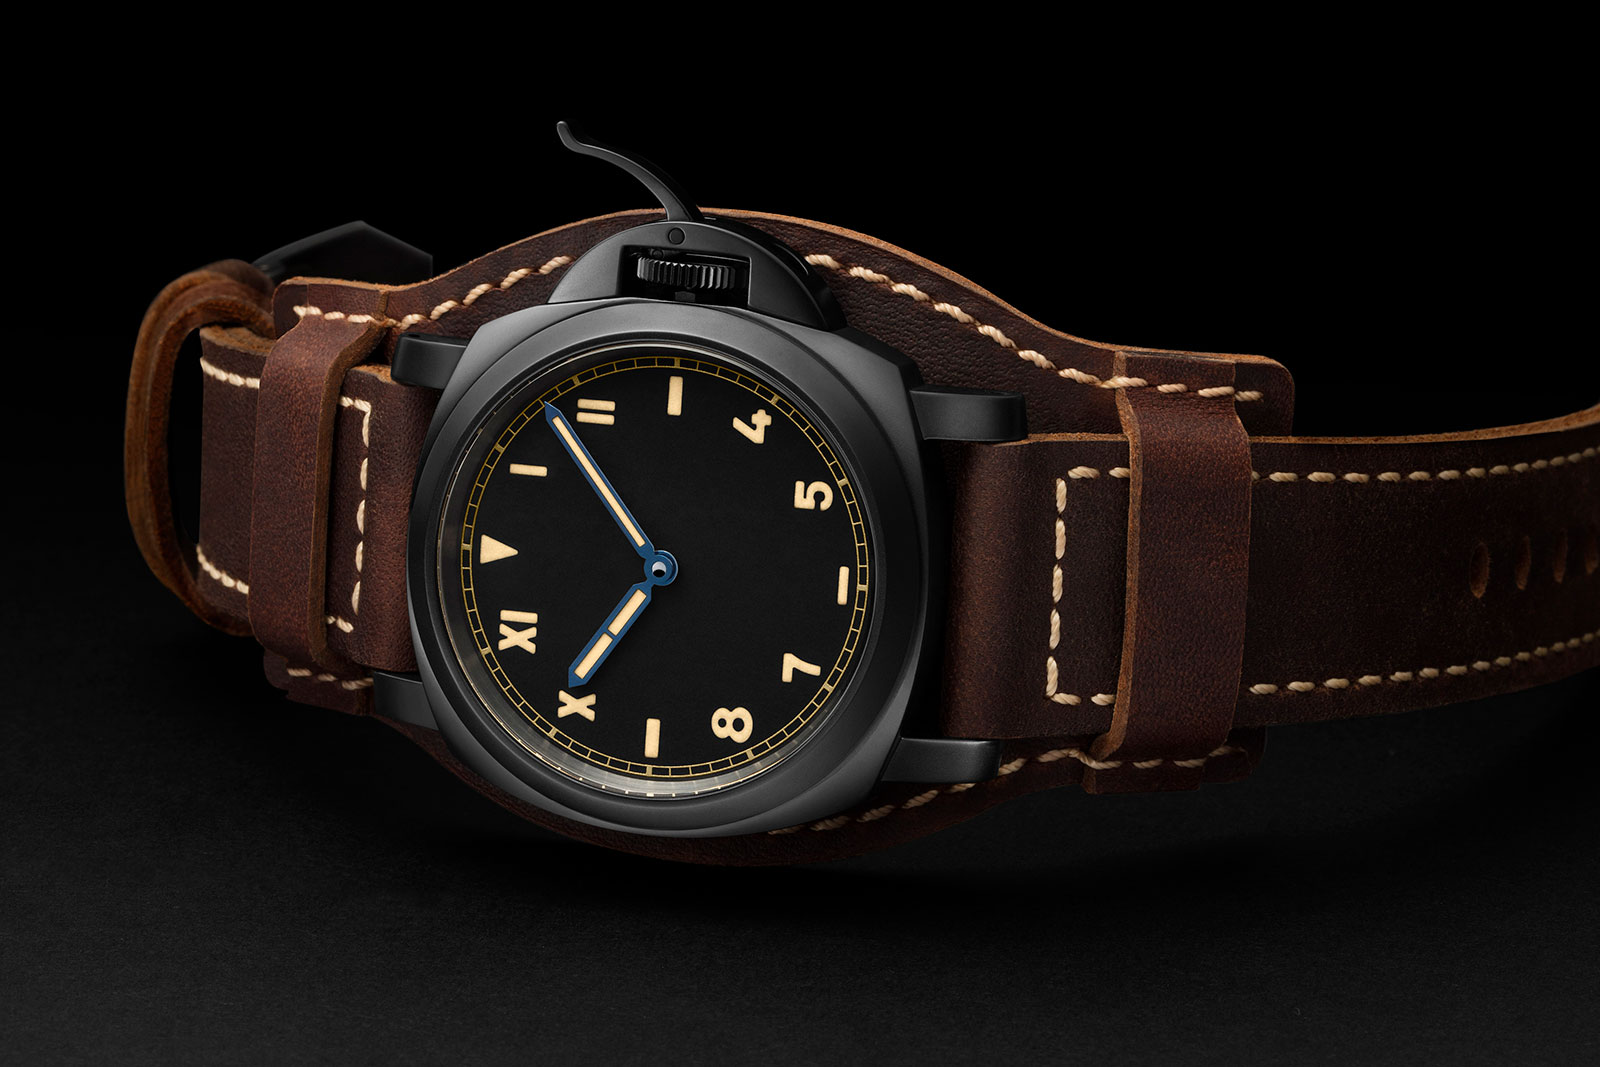 Panerai Panerai Luminor California 8 Days DLC PAM 779 5